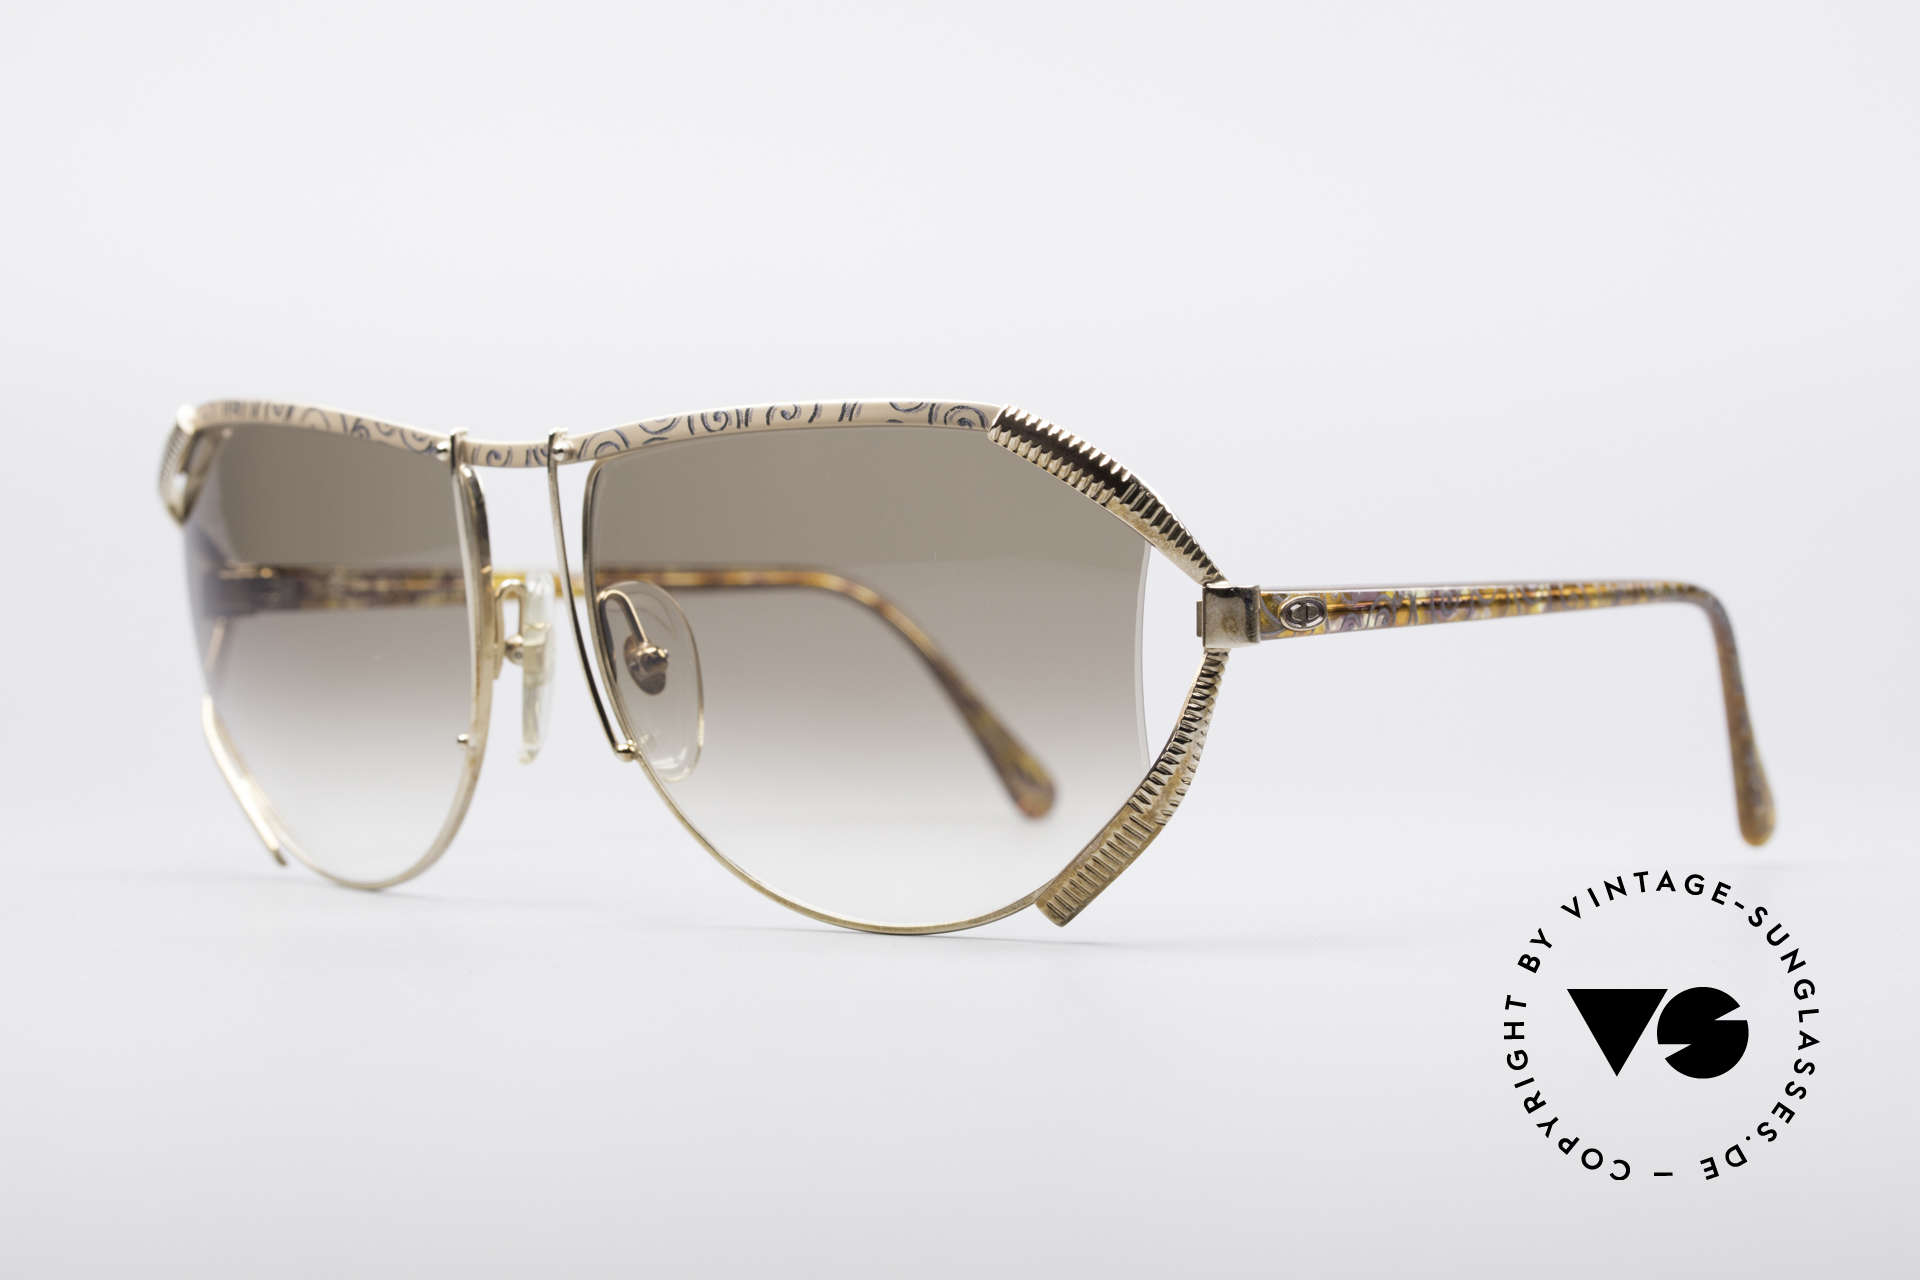 Christian Dior 2609 90's Designer Shades, high-class and costly complex design; truly vintage, Made for Women